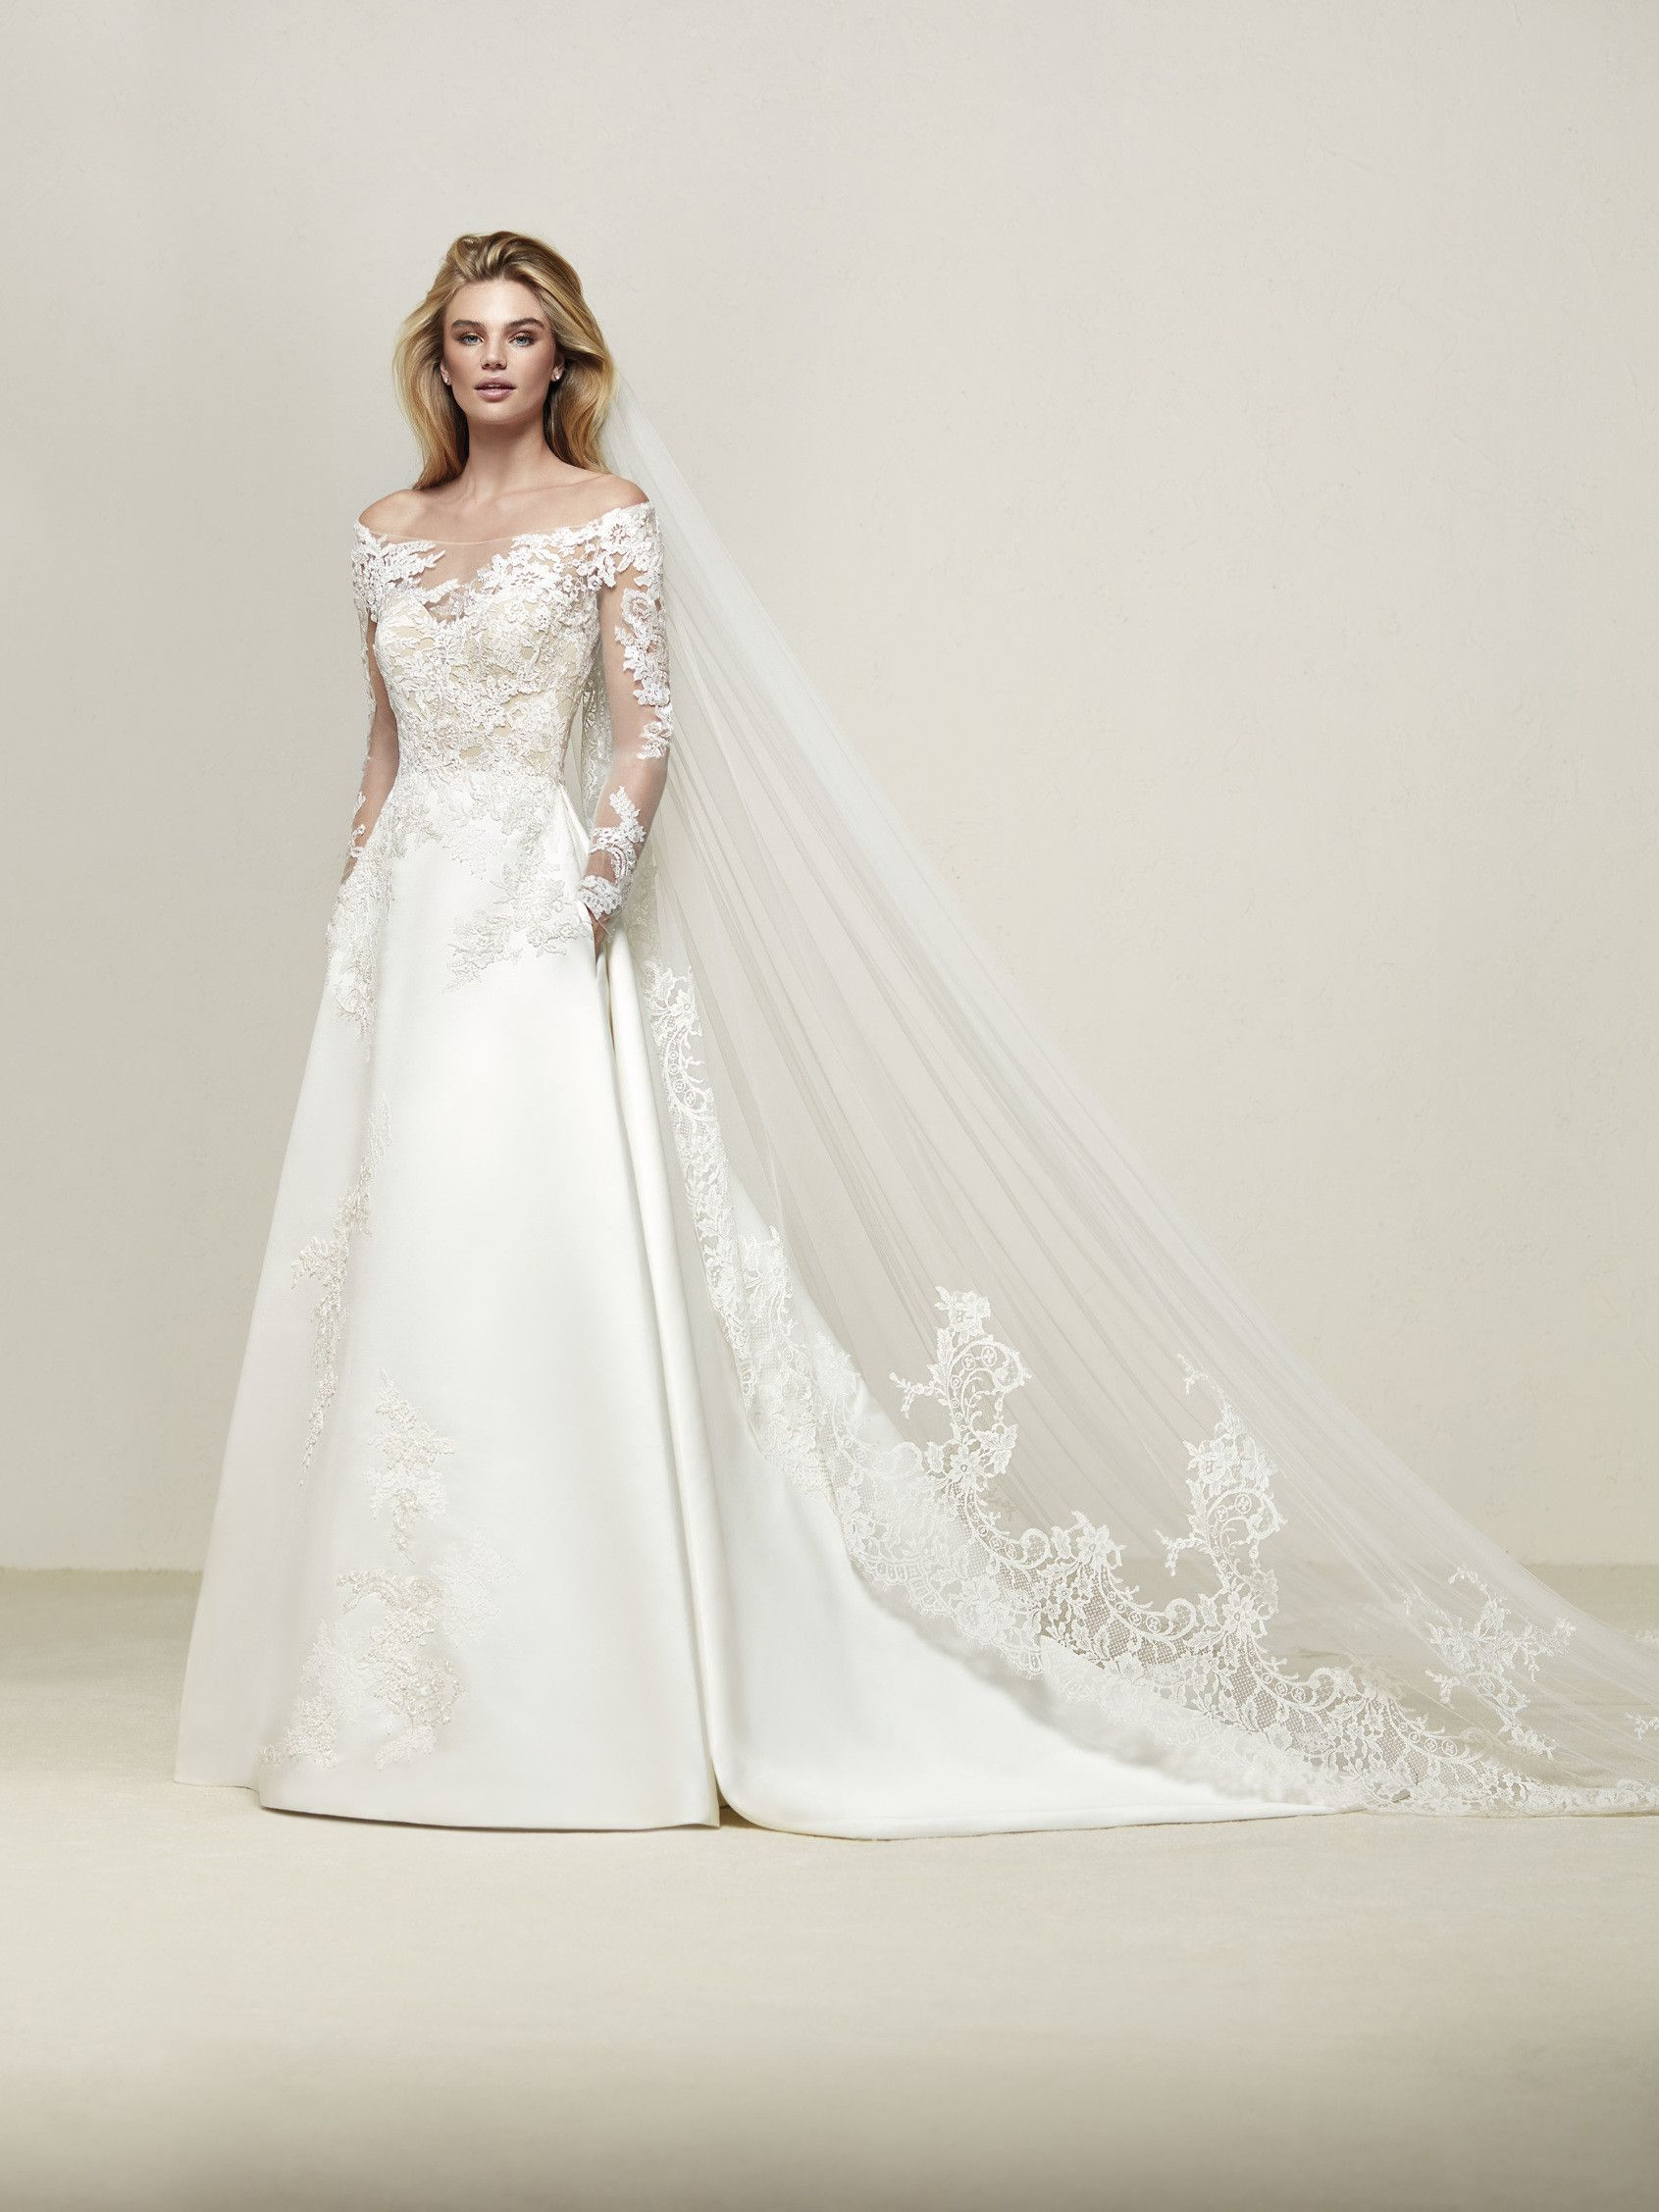 Some dresses just have that charm, like this romantic flared design ...